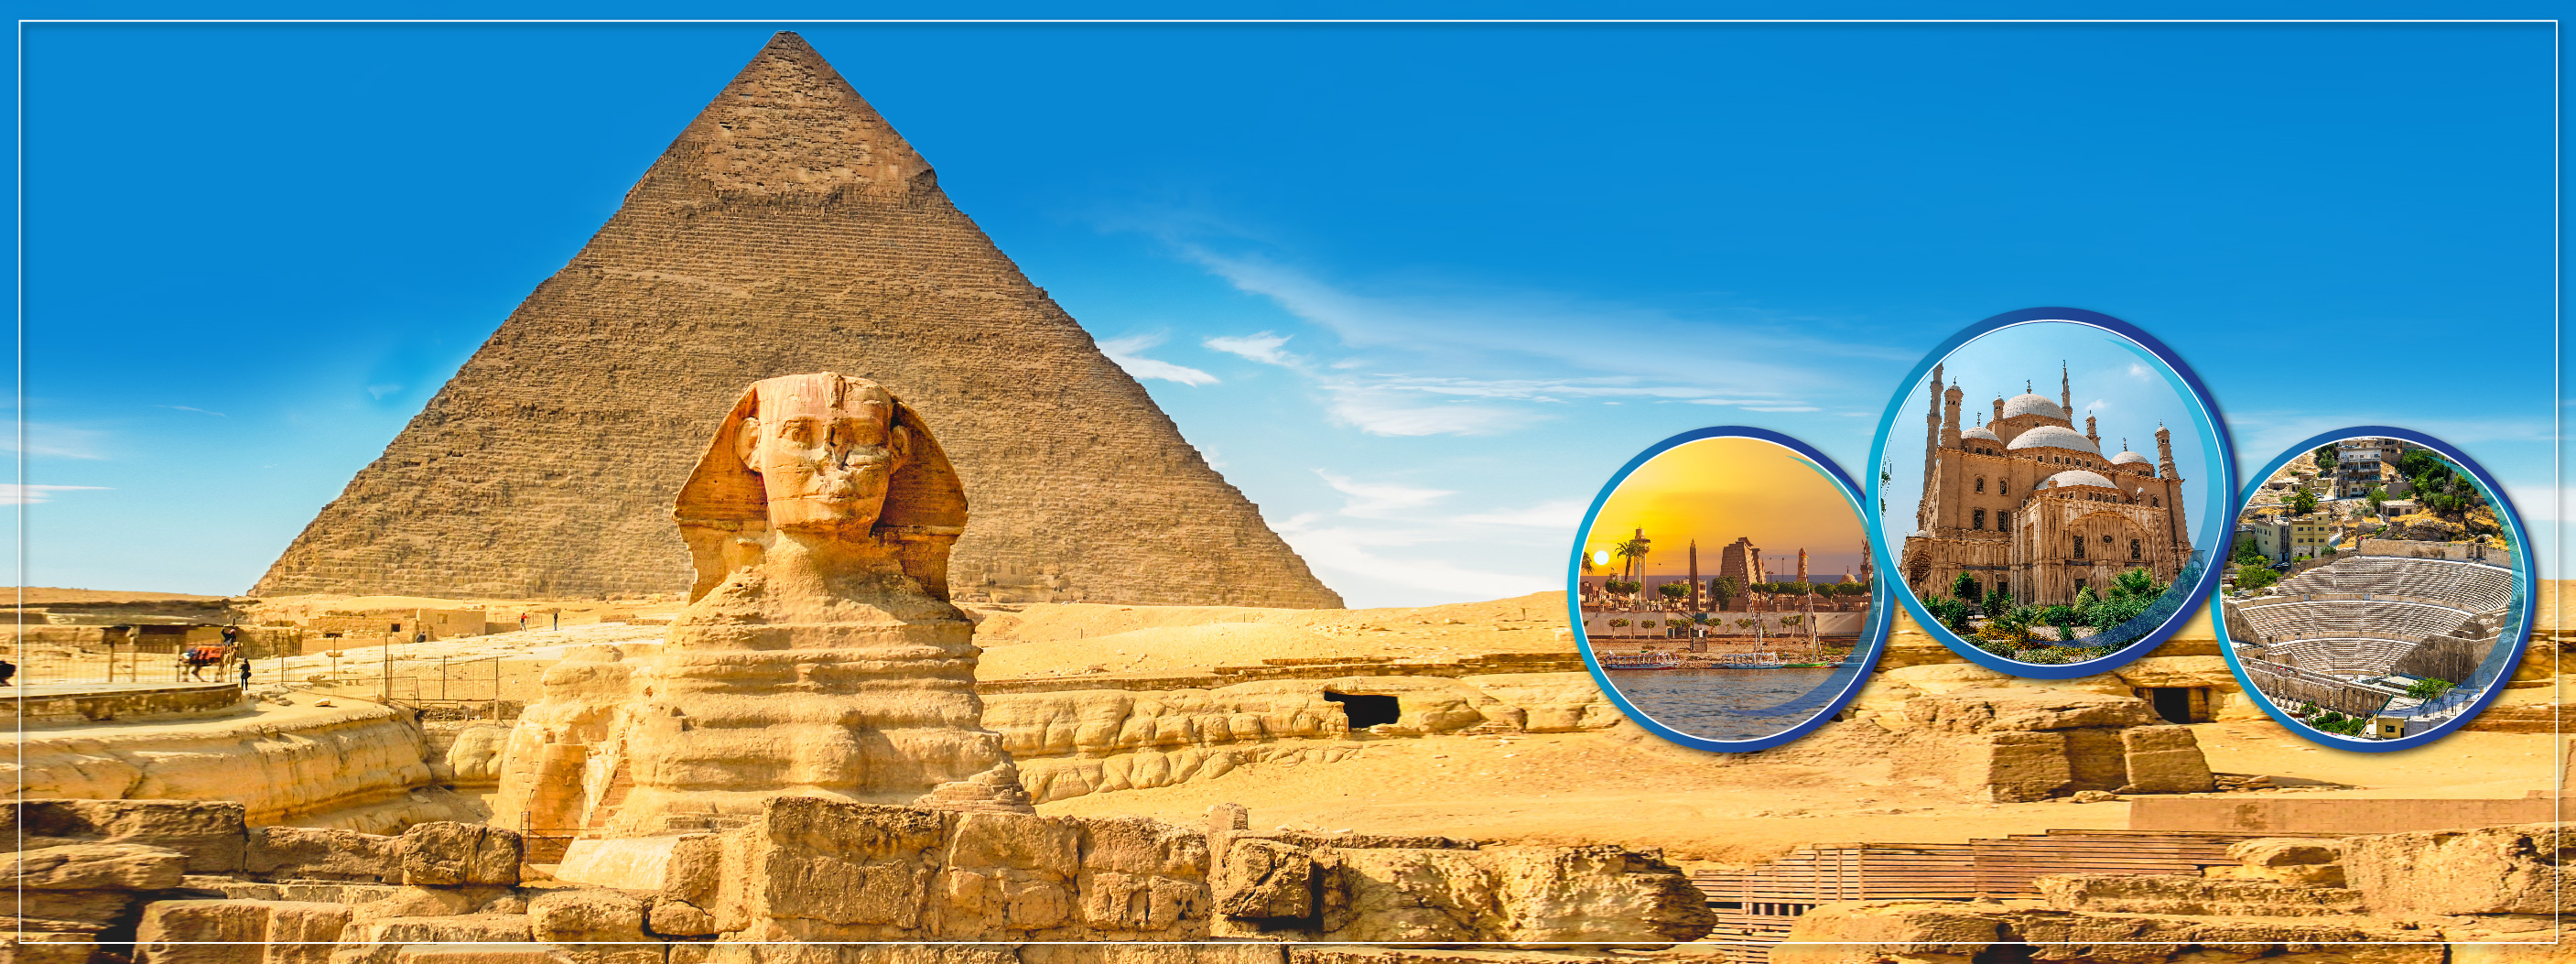 Egypt Tour Packages Egypt Holiday Packages At Best Price Akbar Travels